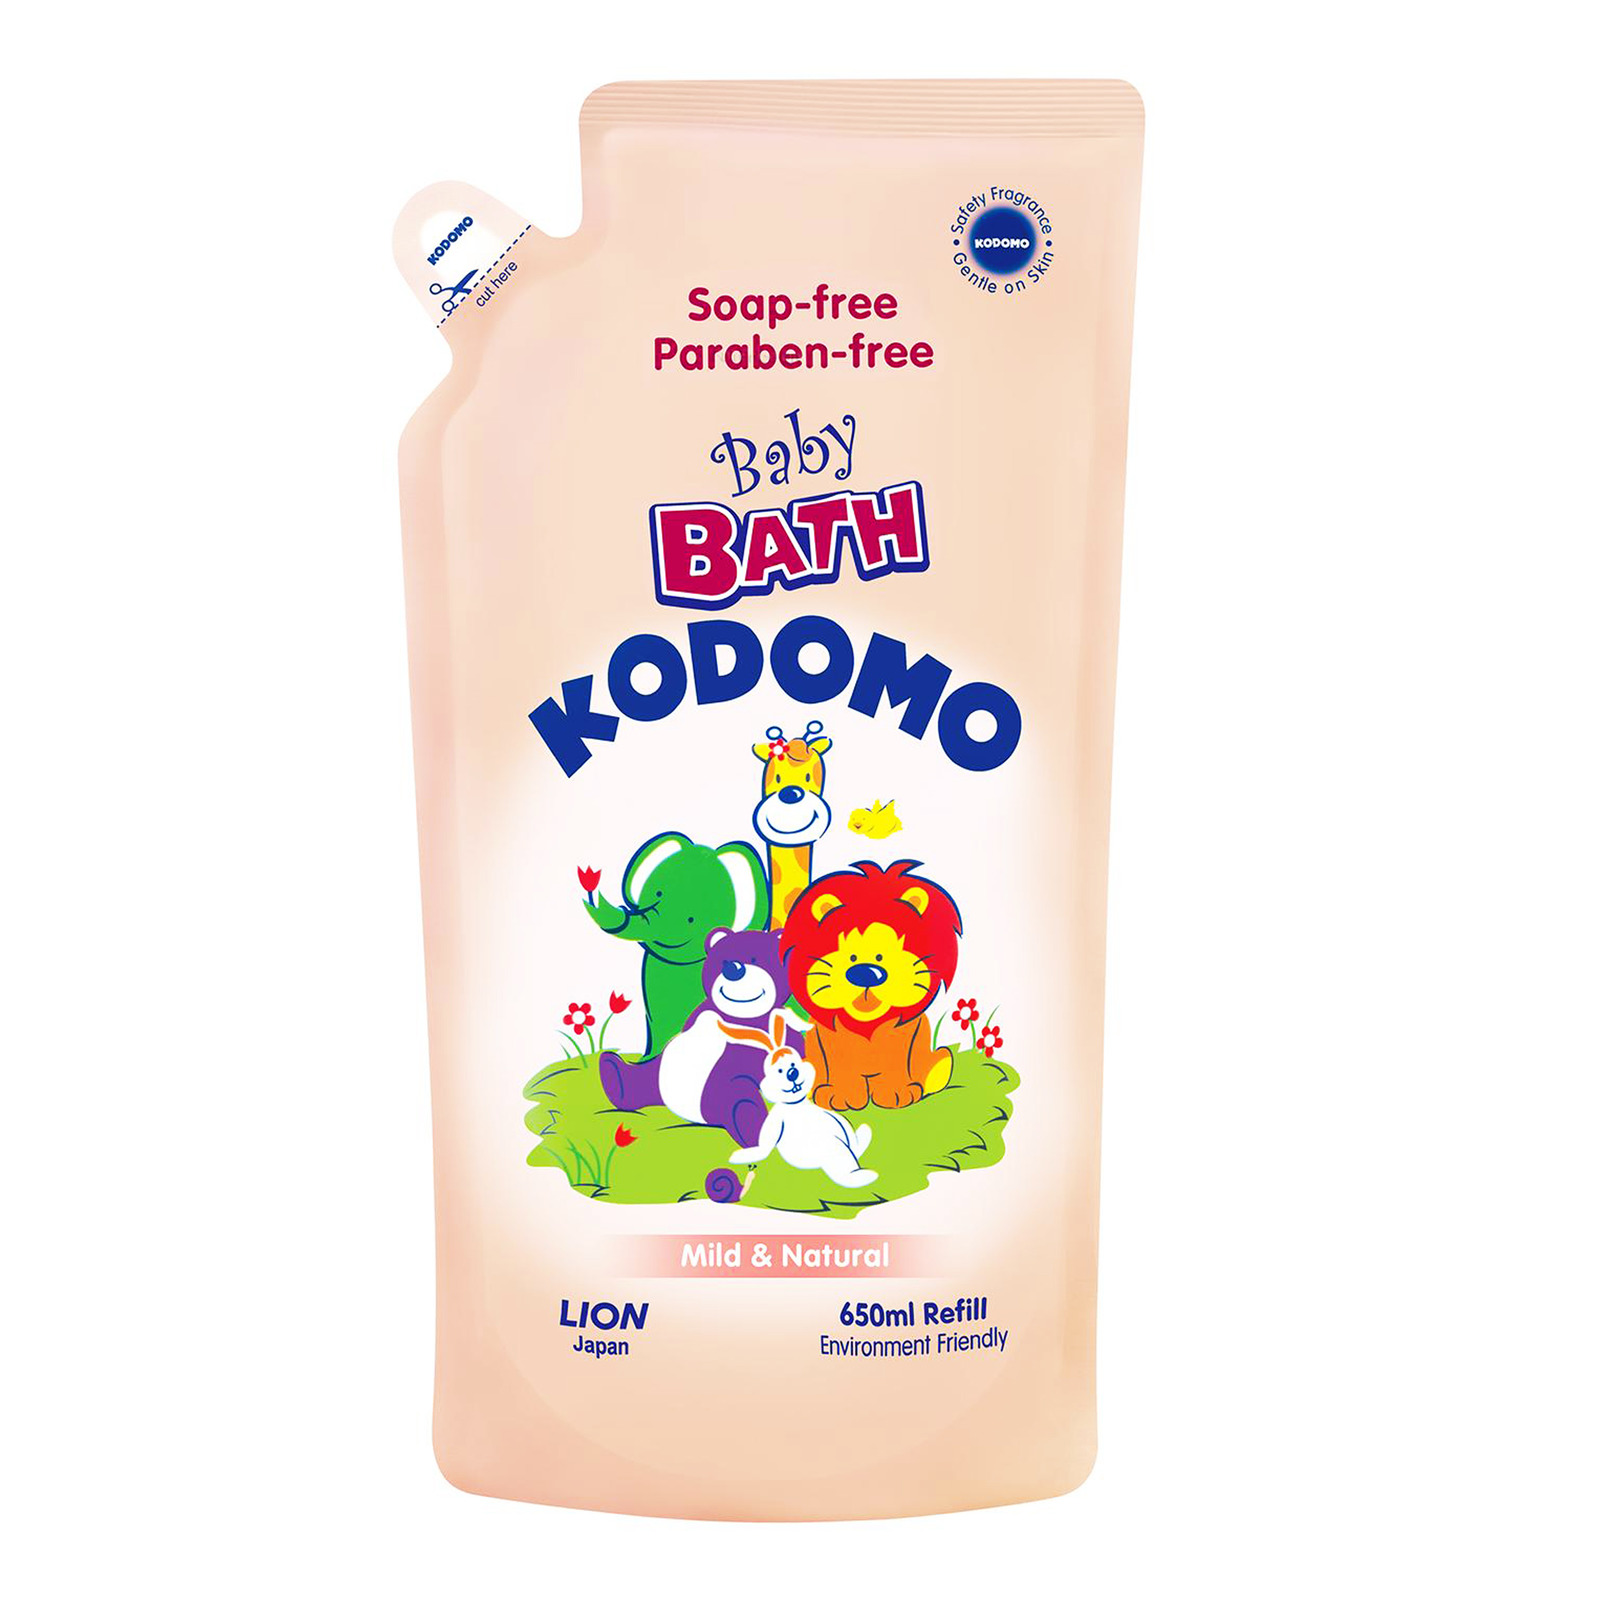 Kodomo Baby Bath Wash Refill - Mild & Natural